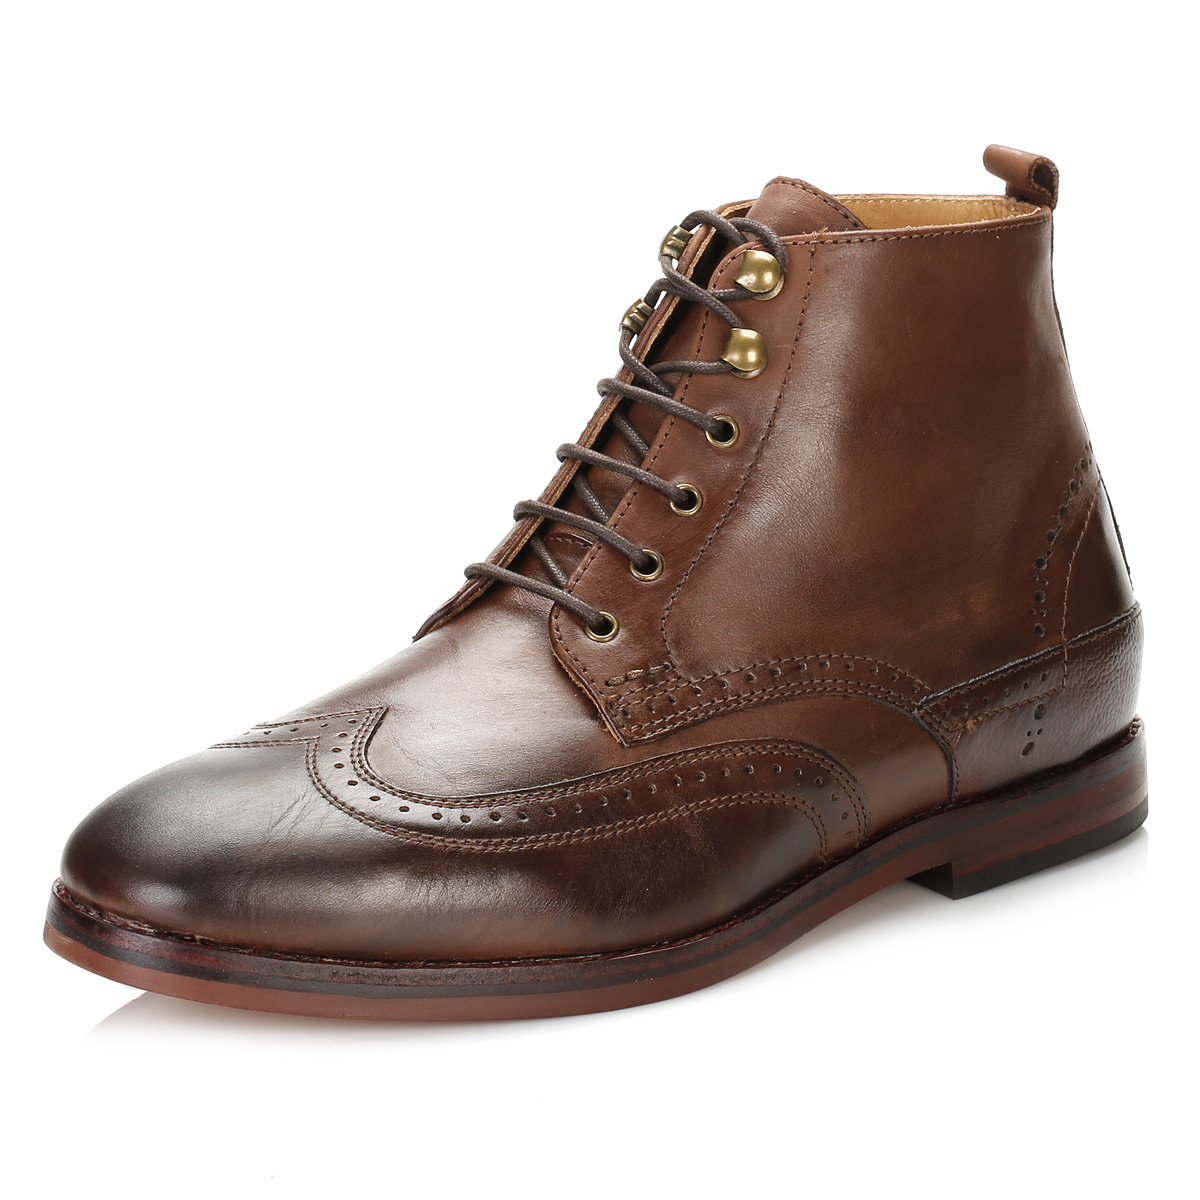 Browse Dune London's collection of work and office boots. Choose from formal styles to show them you mean business. Stay sharp but comfortable with simple pull on or lace-up styles.